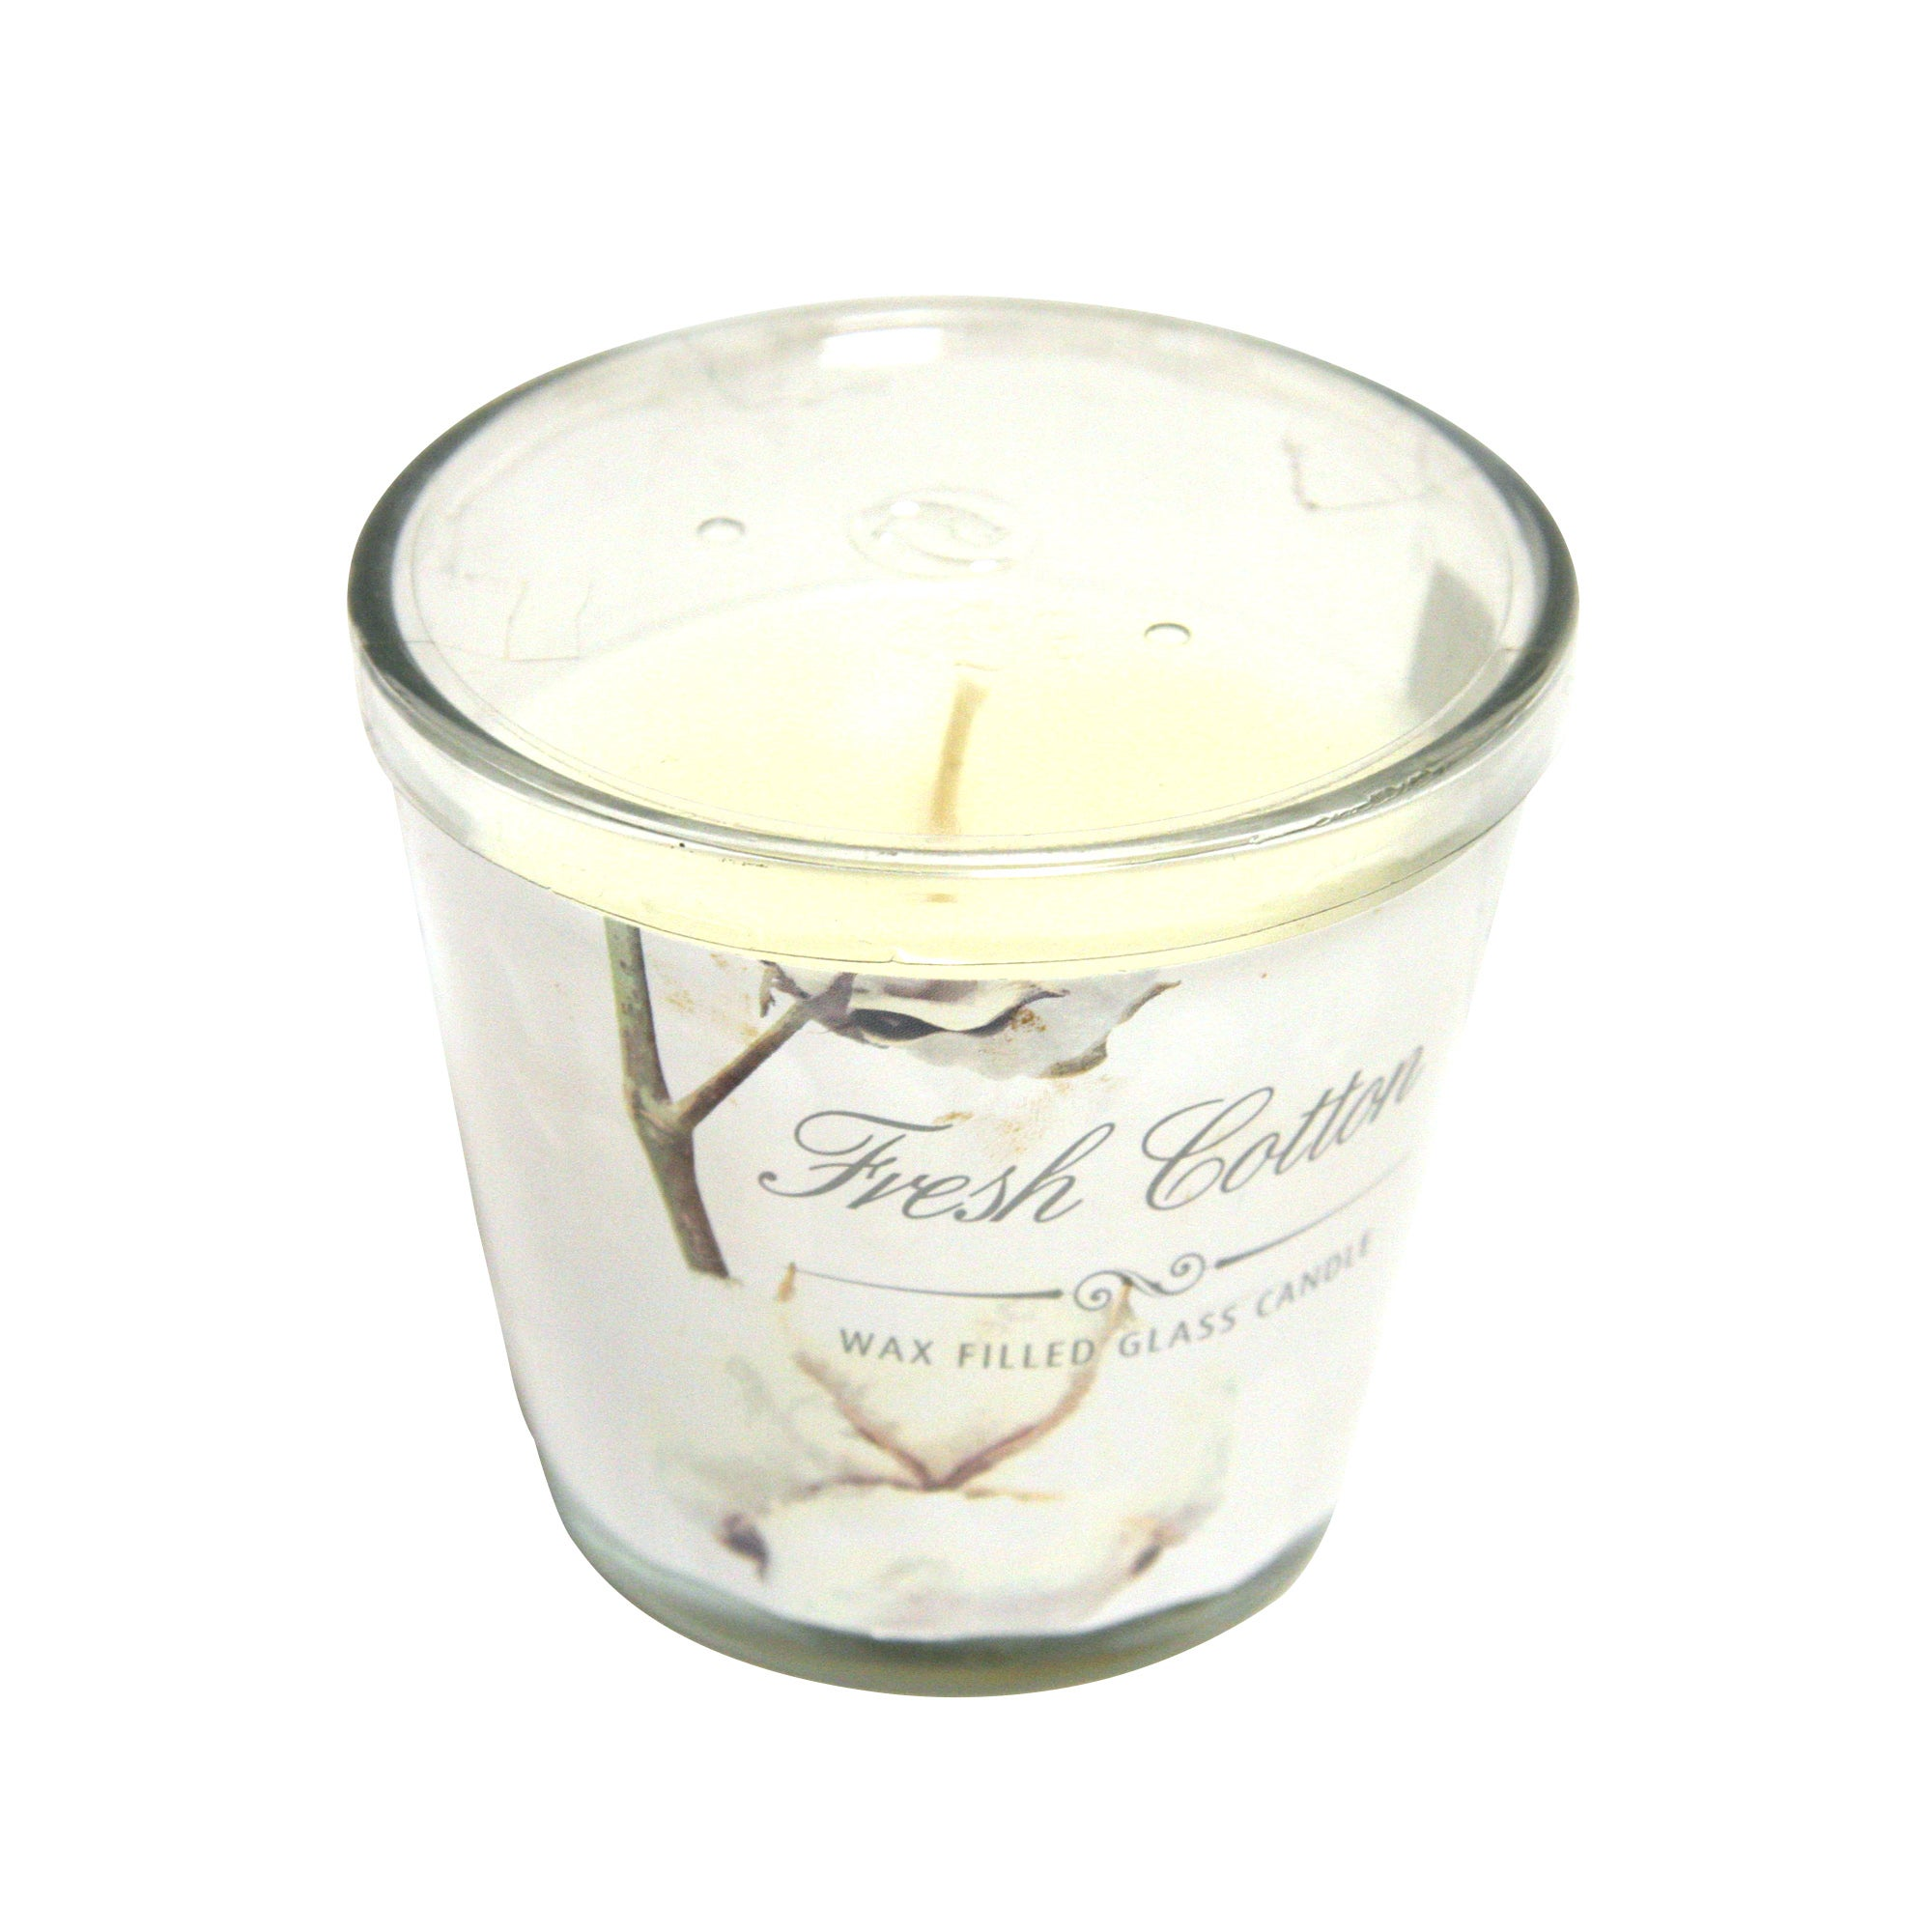 Fresh Cotton Wax Filled Glass Candle